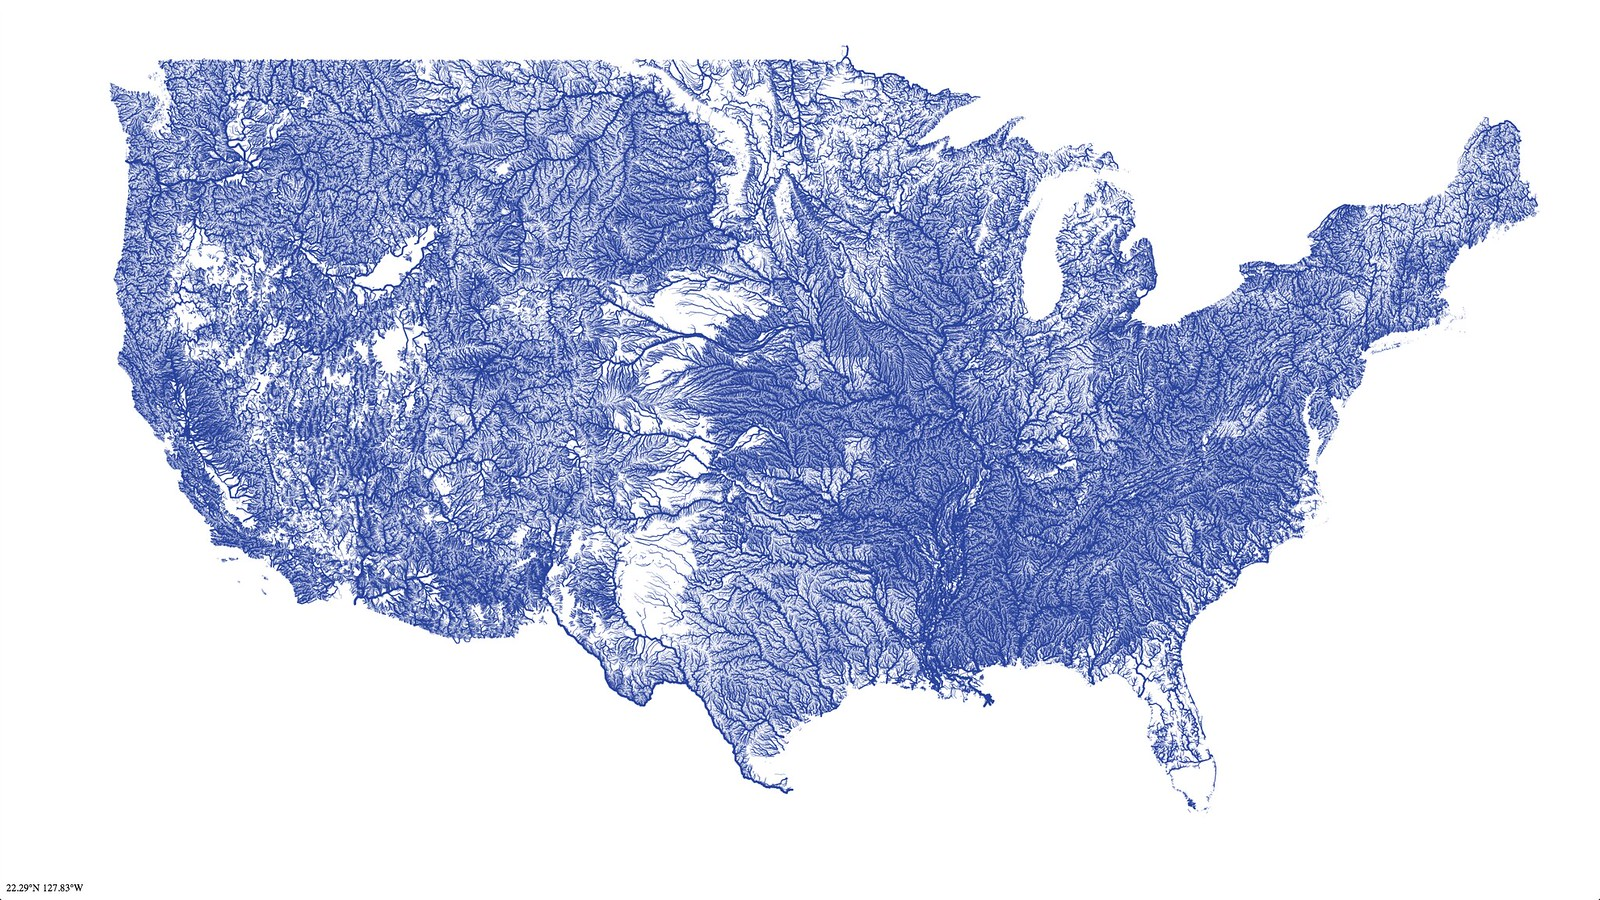 Vector River Maps Flickr Rivers And Watersheds Of Virginia River Map United States Omaha Nebraska